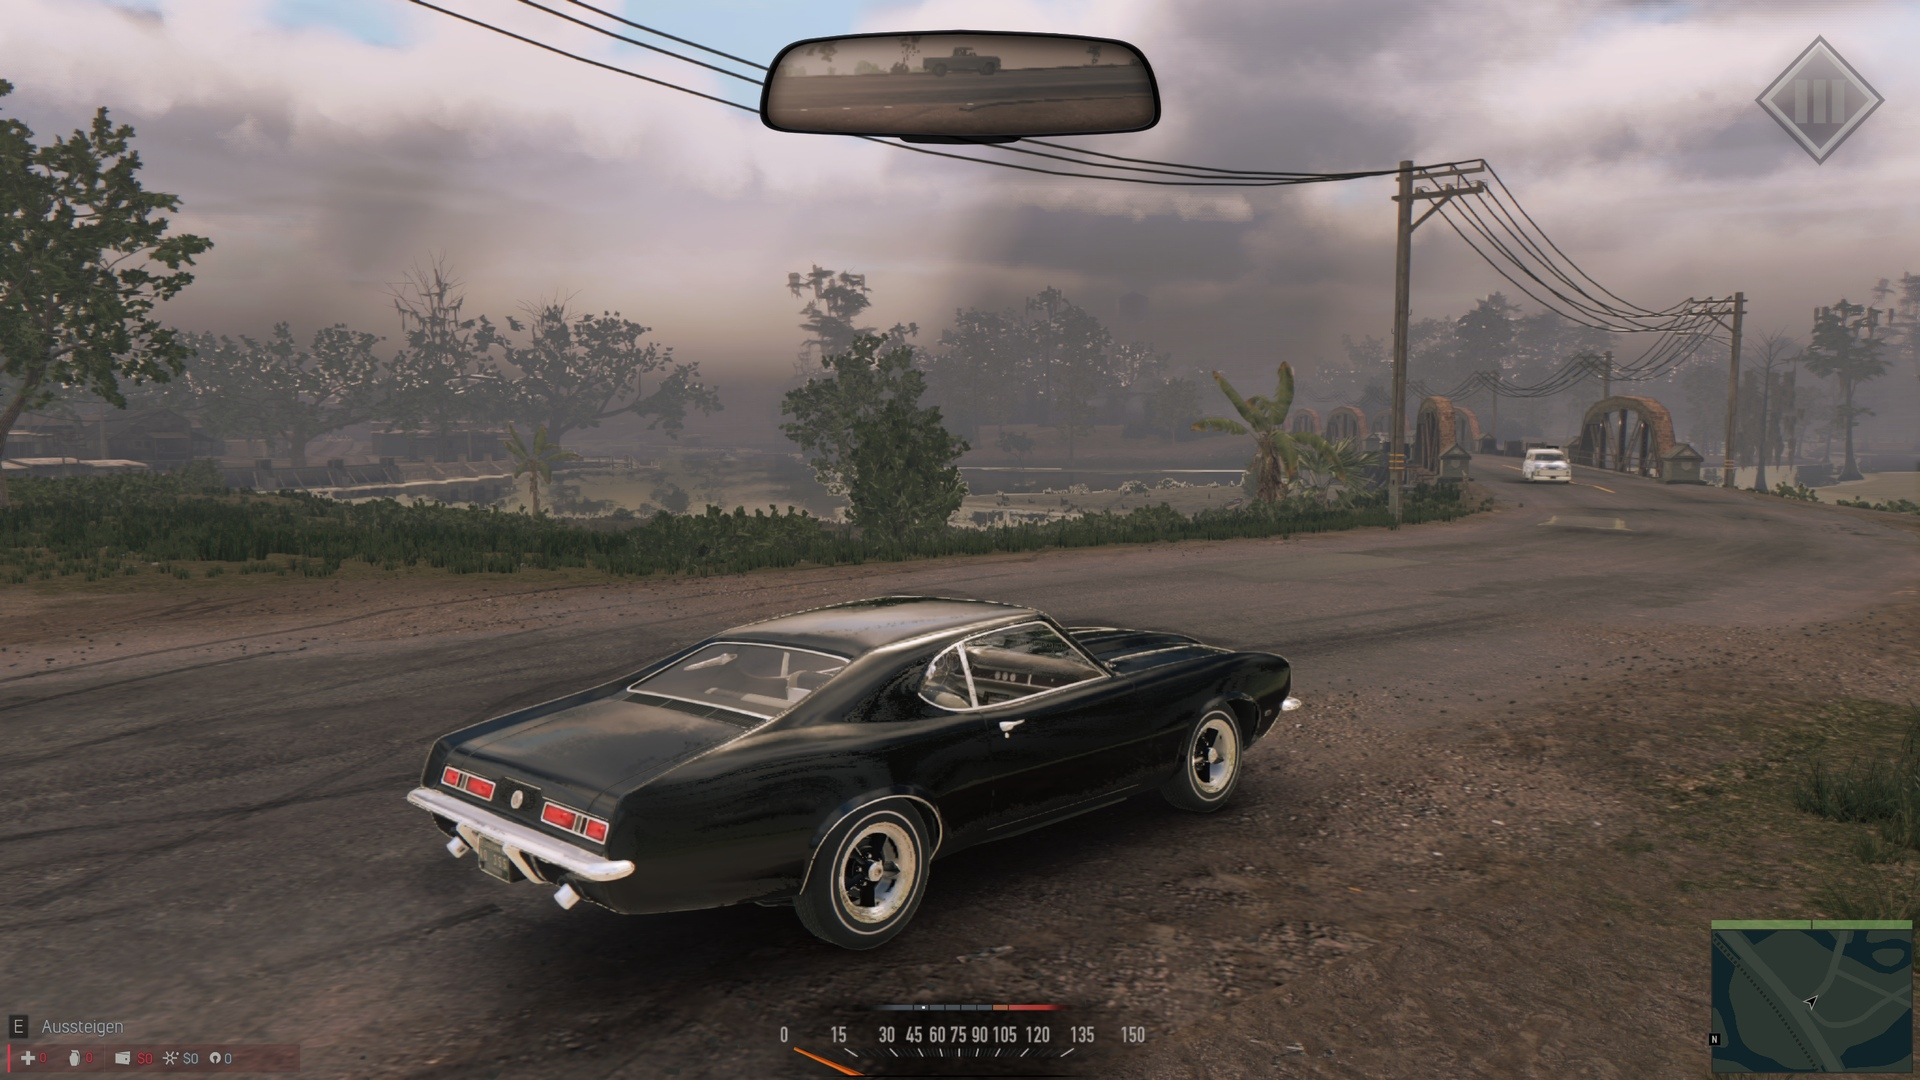 Mafia-3-Temp-Artifacts-1440p-pcgh